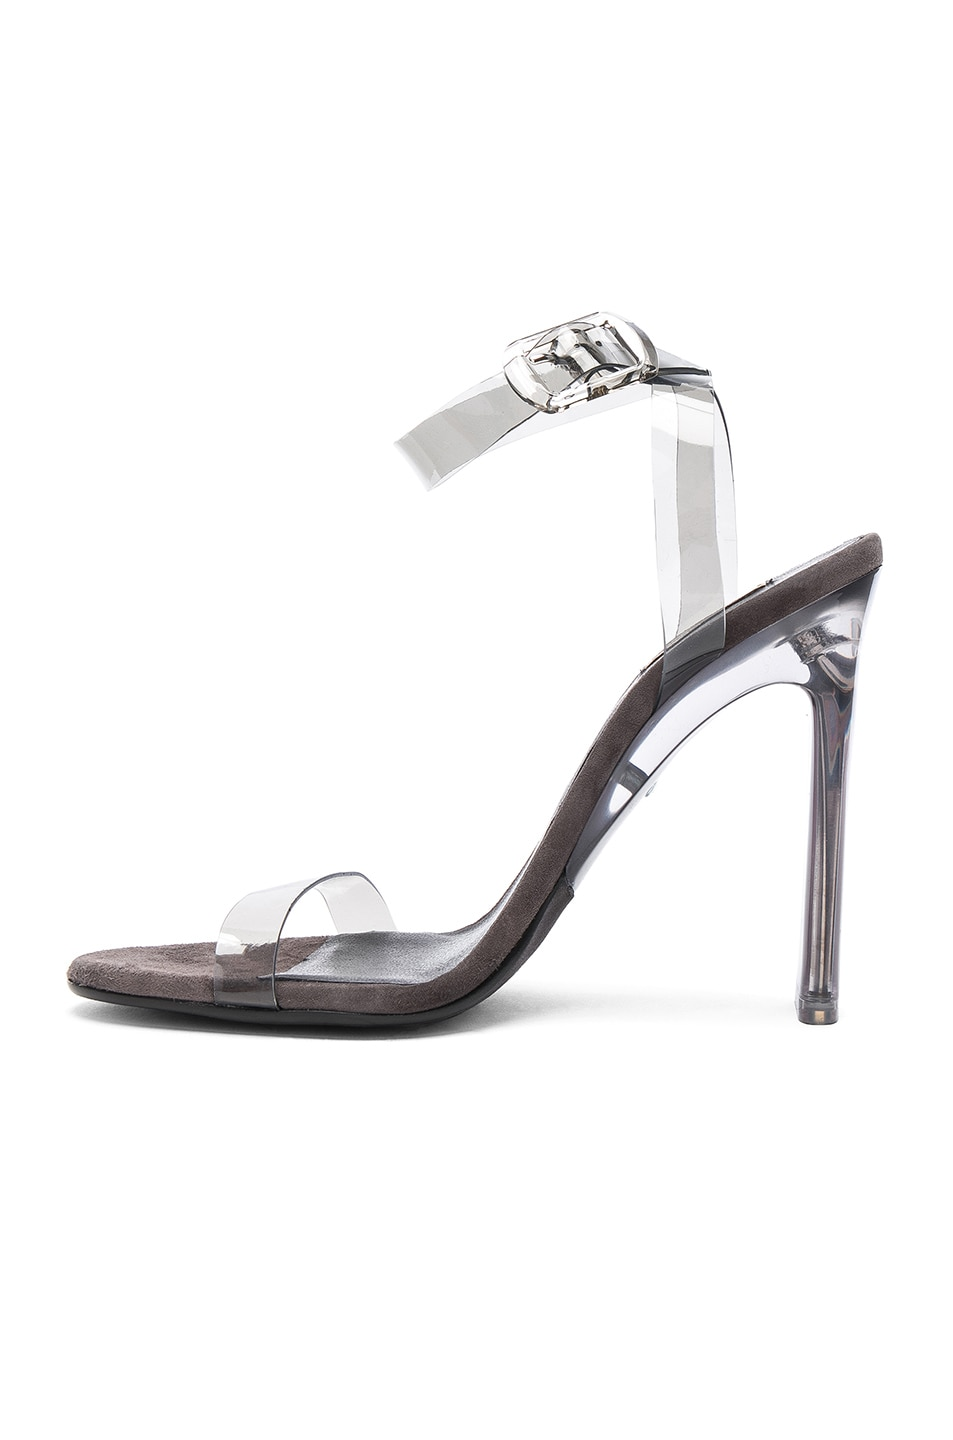 Image 5 of YEEZY Season 6 PVC Sandals with Ankle Strap in Smoke